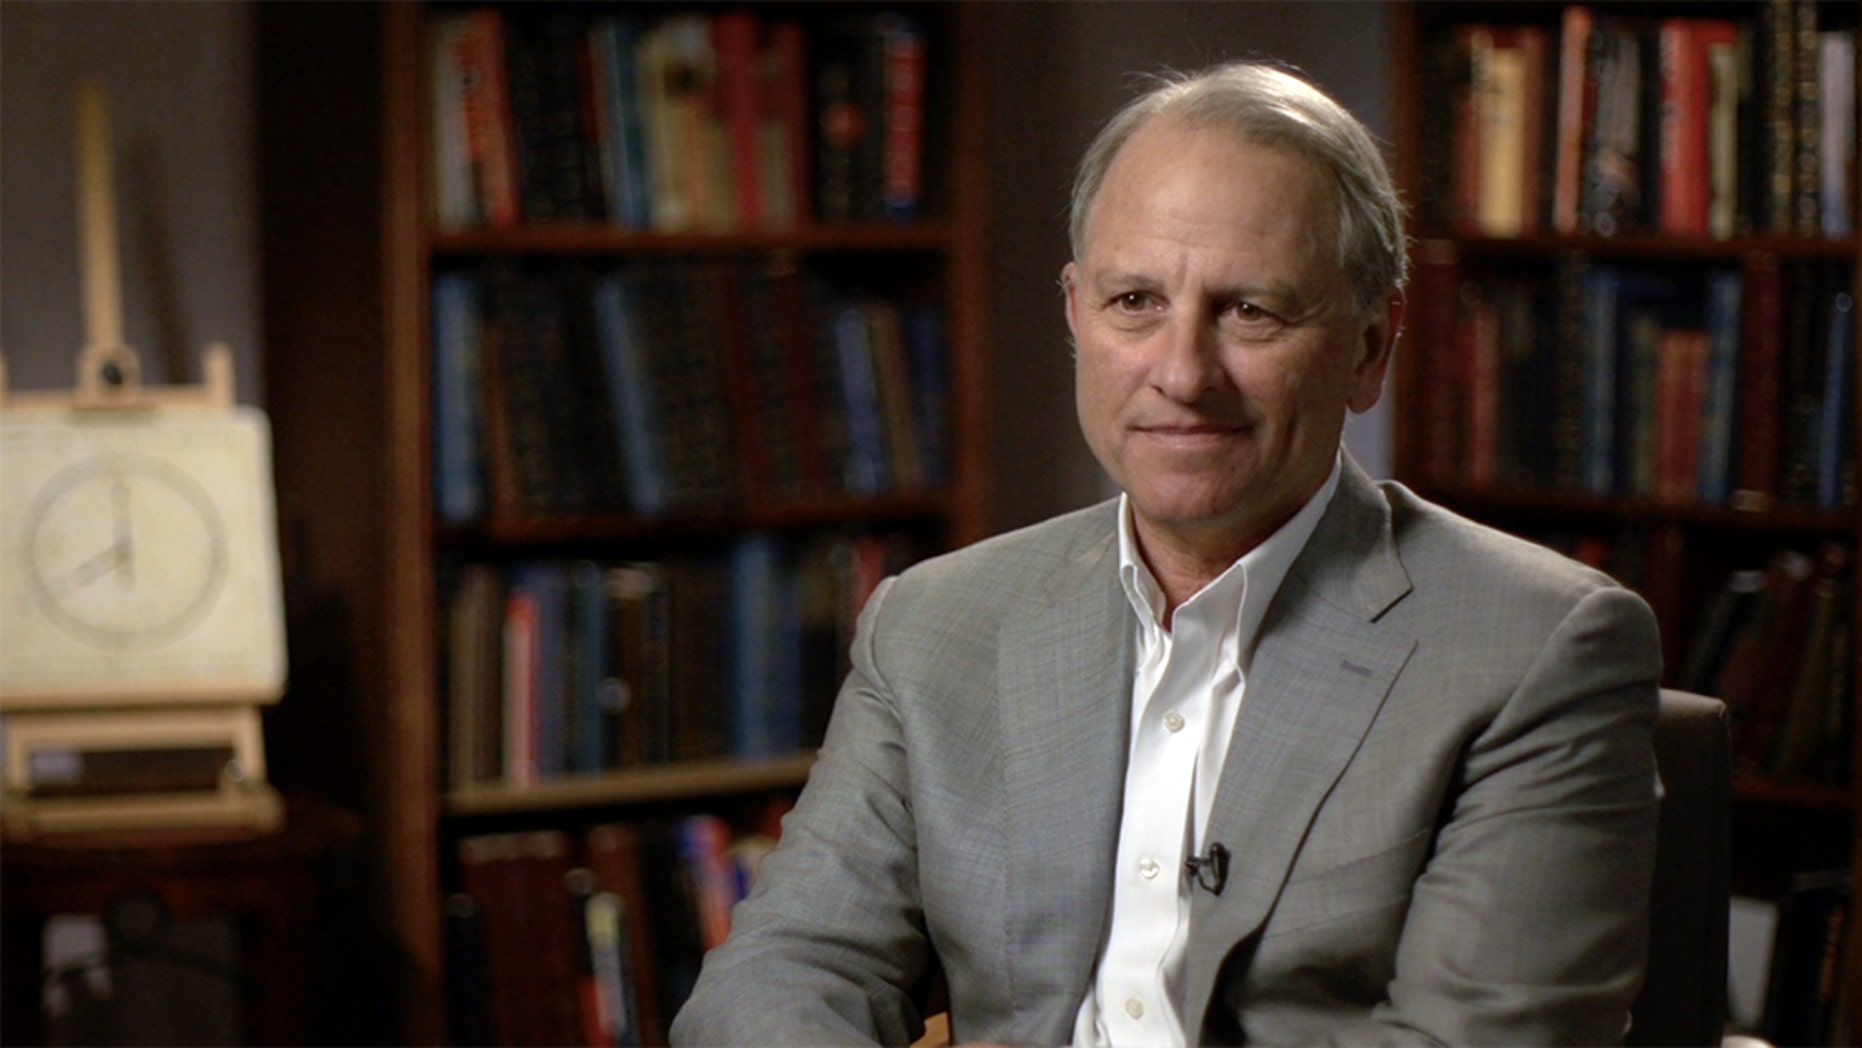 """Nineteen past and present employees allege Jeff Fager """"allowed harassment"""" at CBS News, according to Ronan Farrow's New Yorker article, published on Friday."""